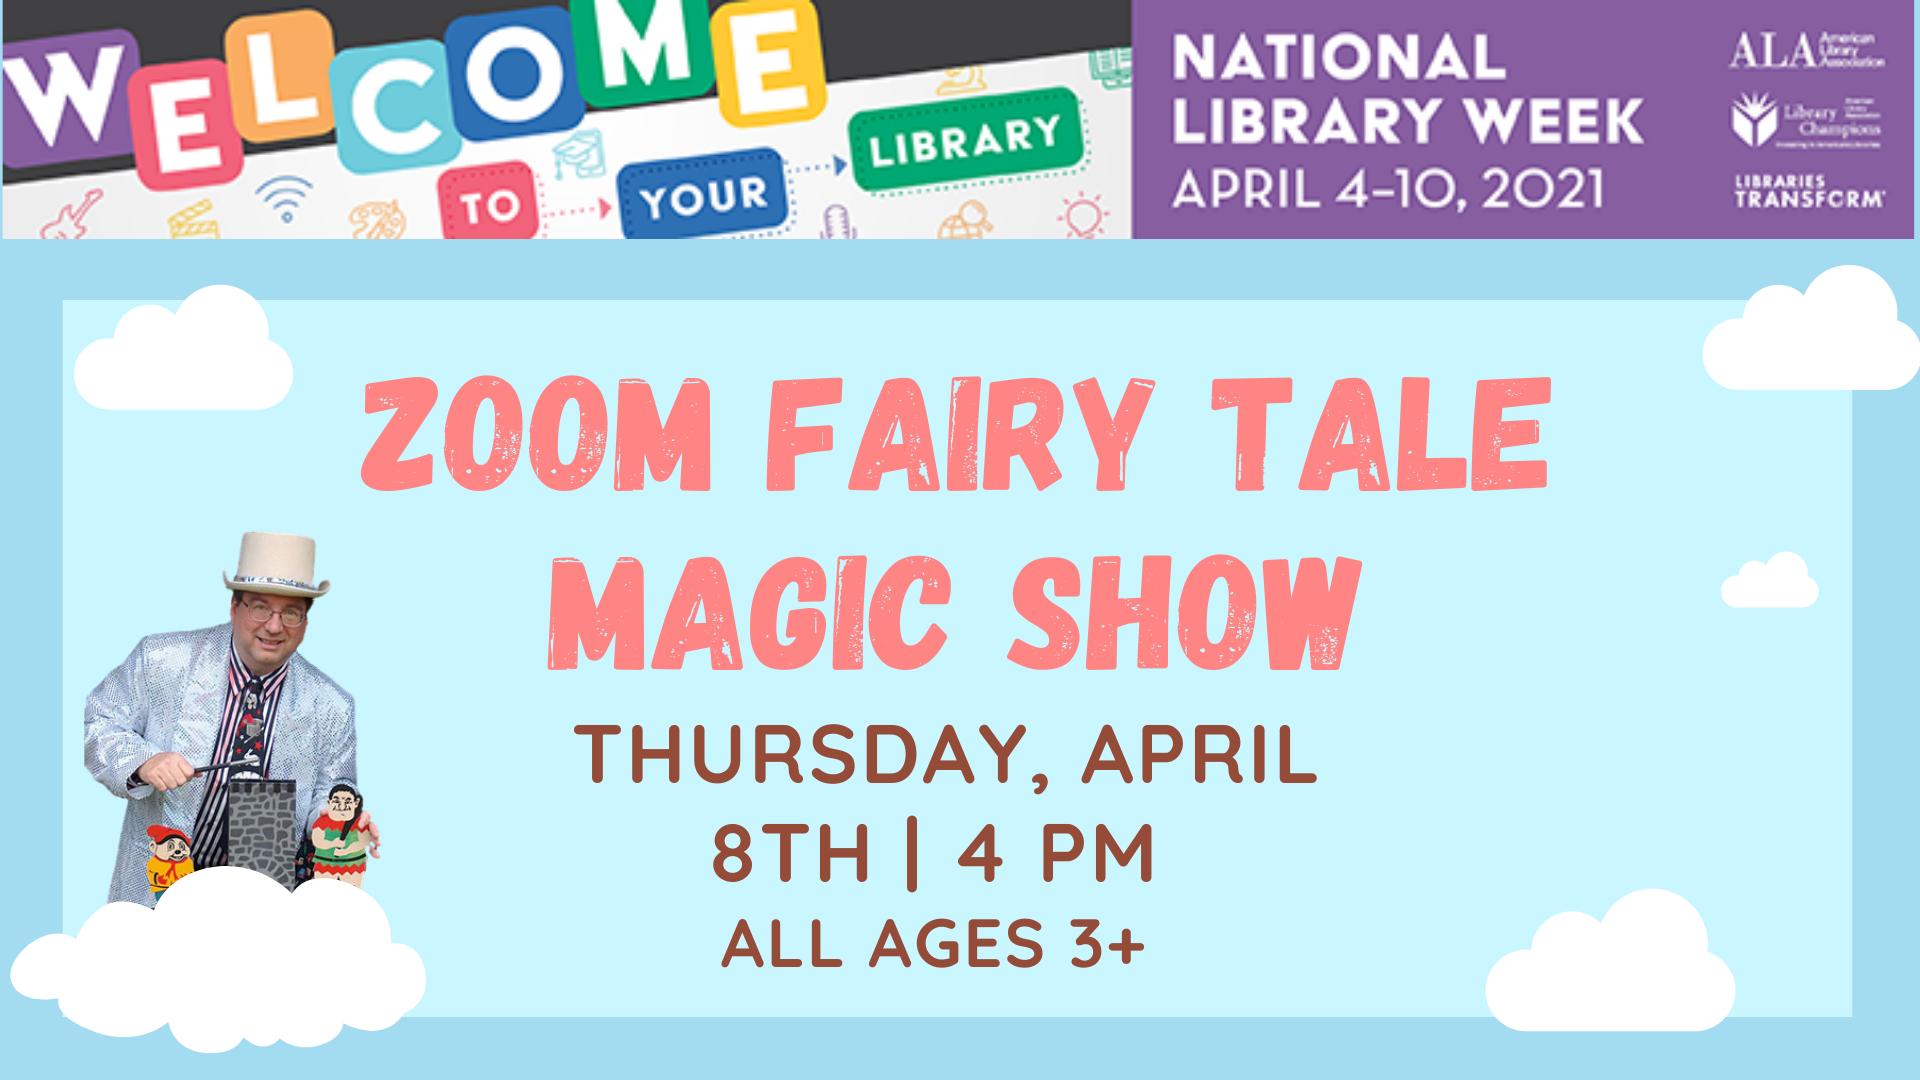 Zoom Fairy Tale Magic Show - All Ages 3+